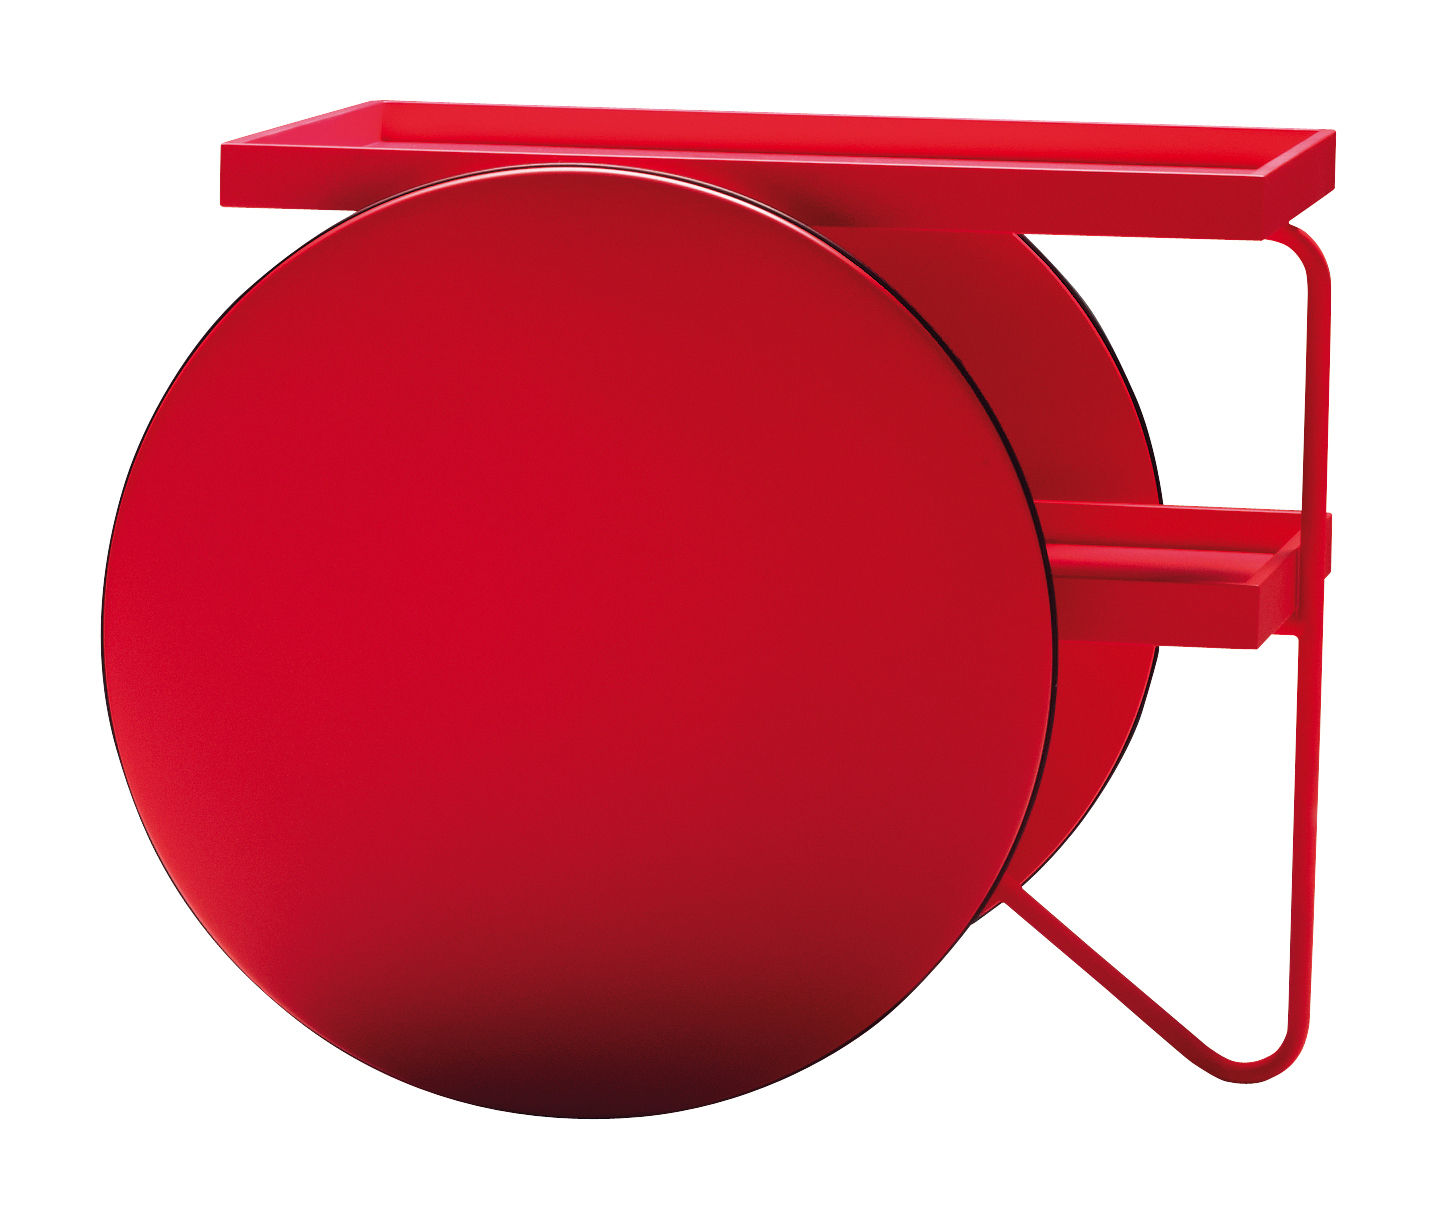 Furniture - Miscellaneous furniture - Chariot Dresser by Casamania - Fluorescent red - Lacquered MDF